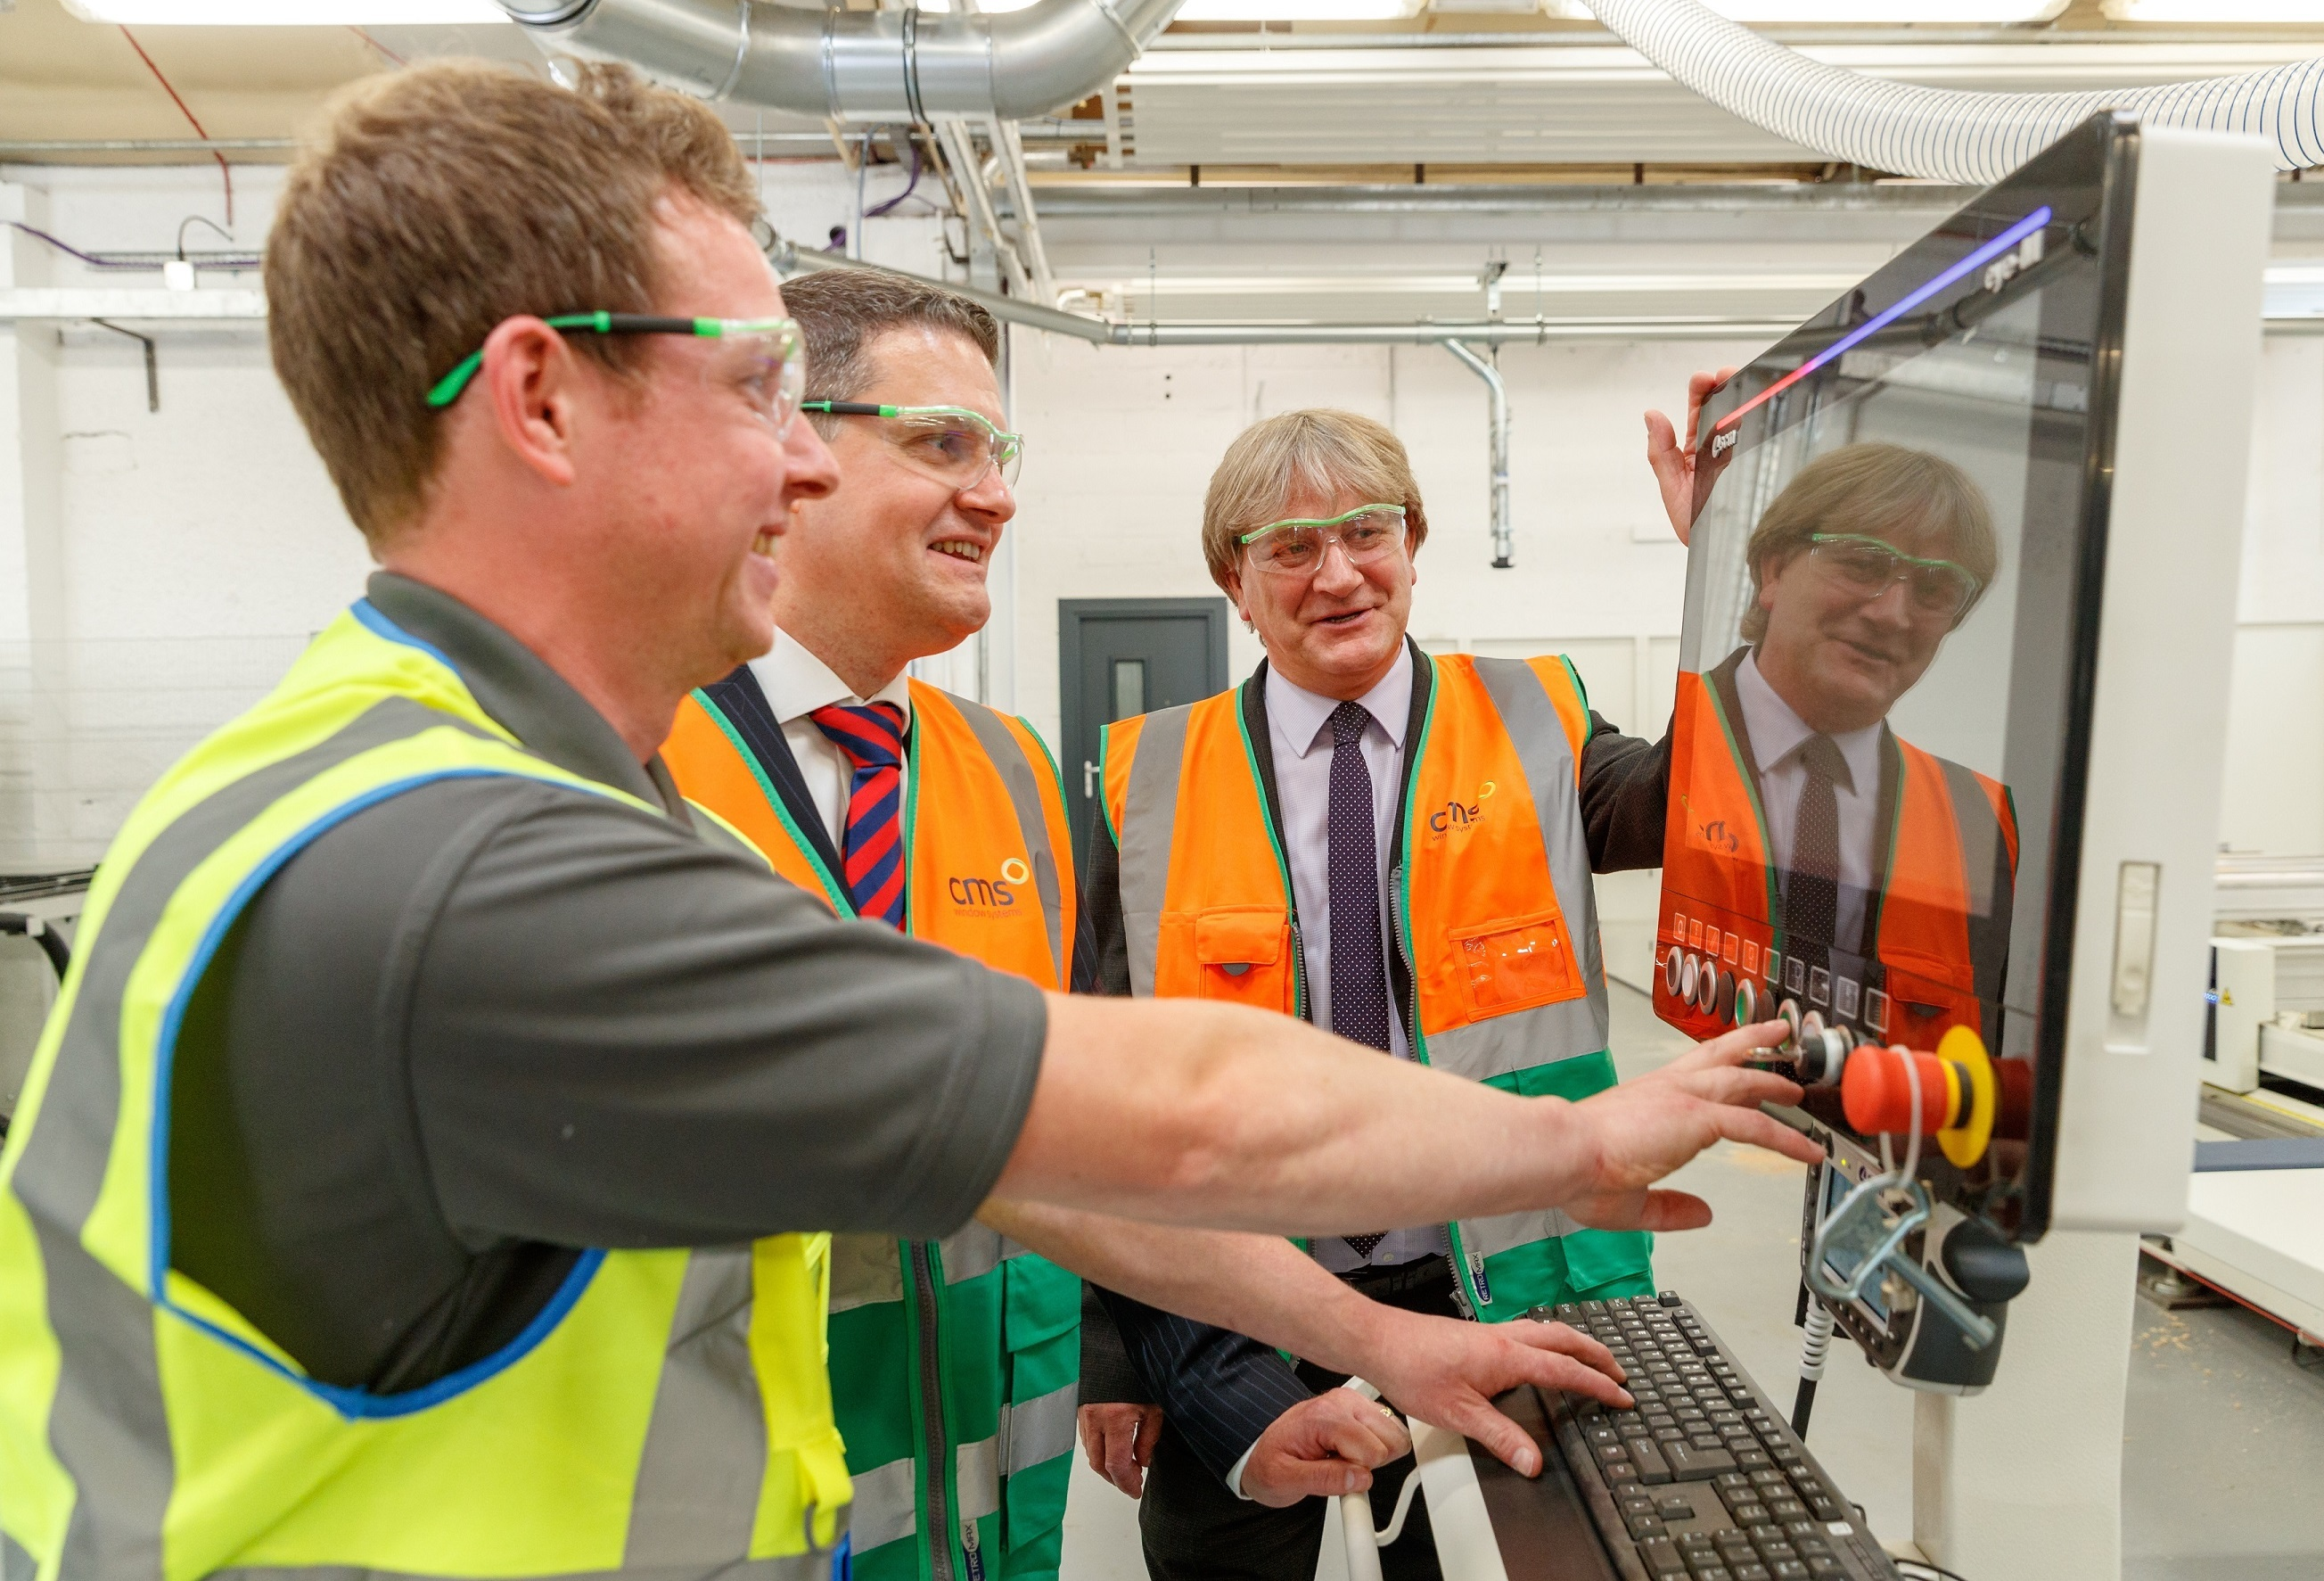 The official opening ceremony of the CMS Window Systems Hayfield Factory in the Hayfield Industrial Estate in Kirkcaldy last month. It's hoped the new programme will help many more businesses flourish.